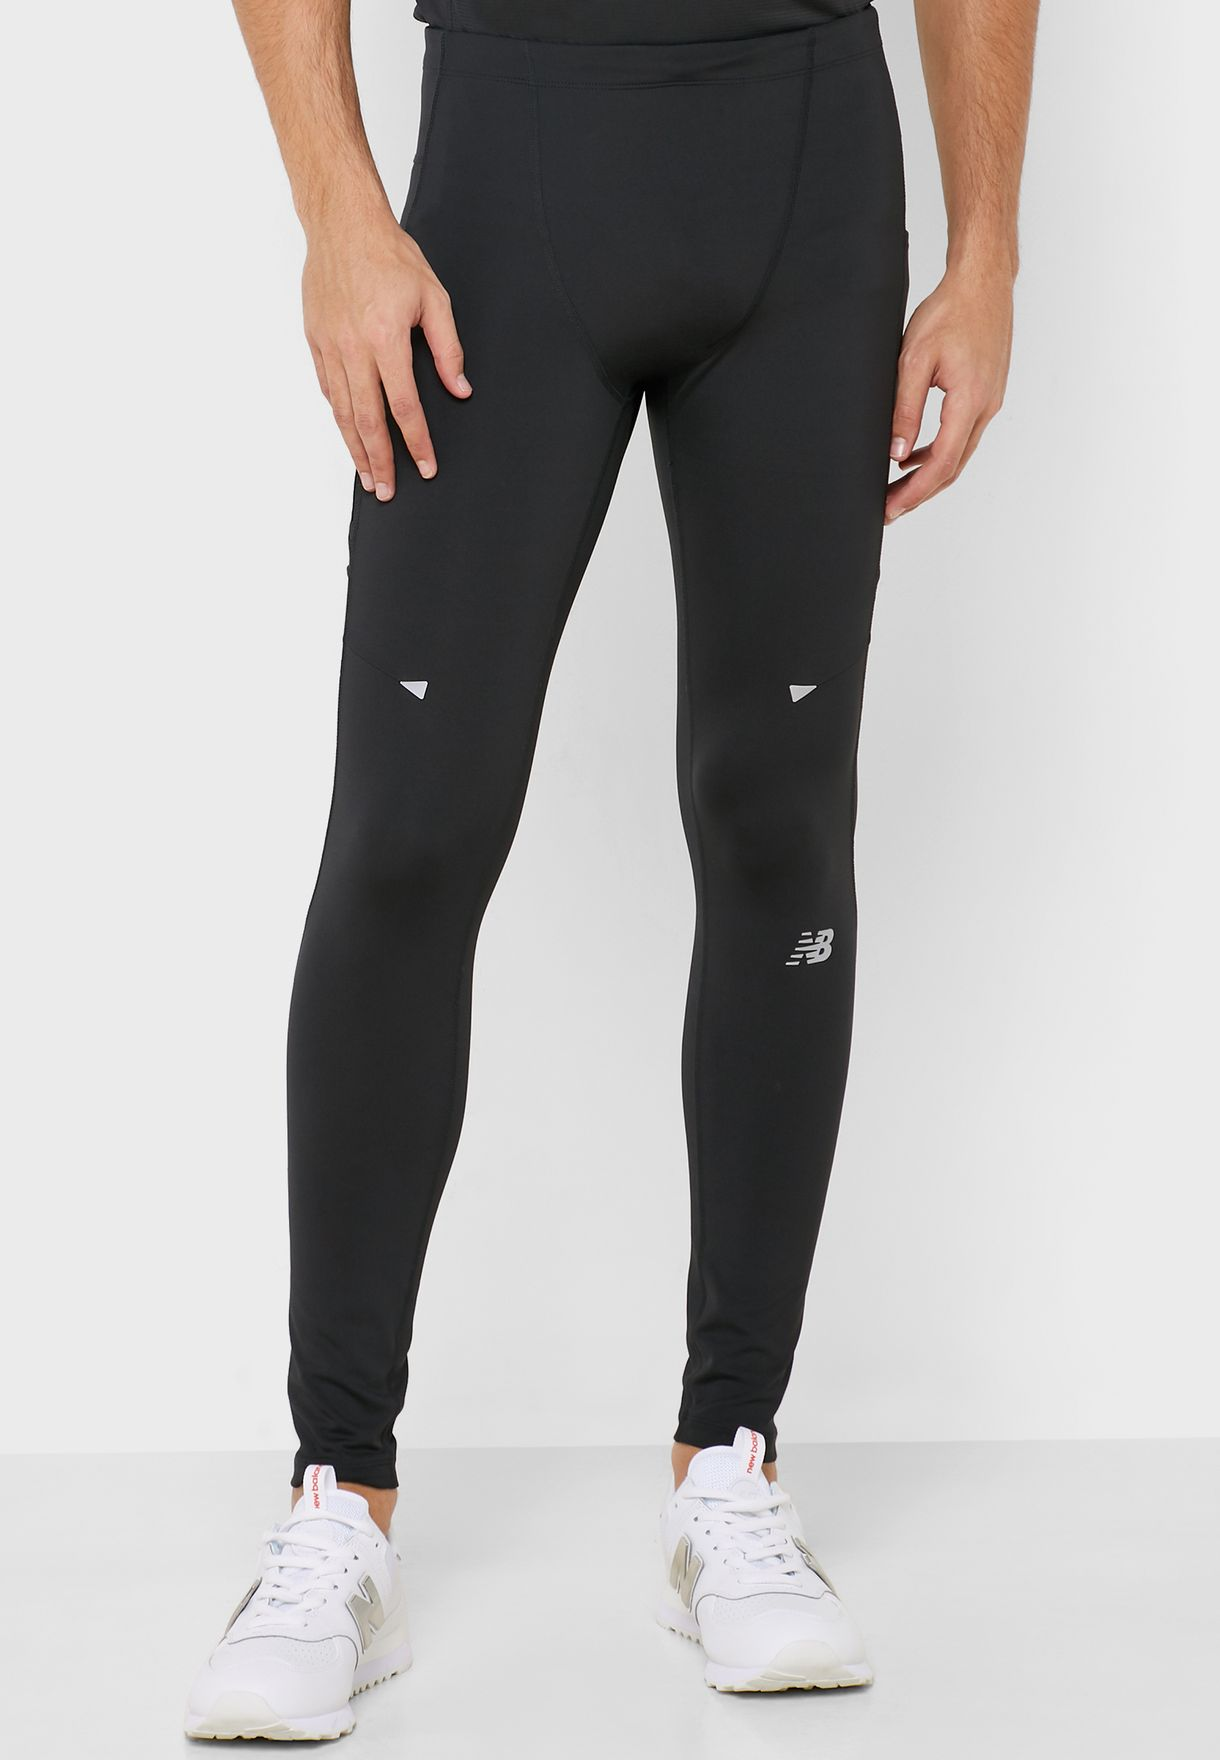 Impact Run Tights